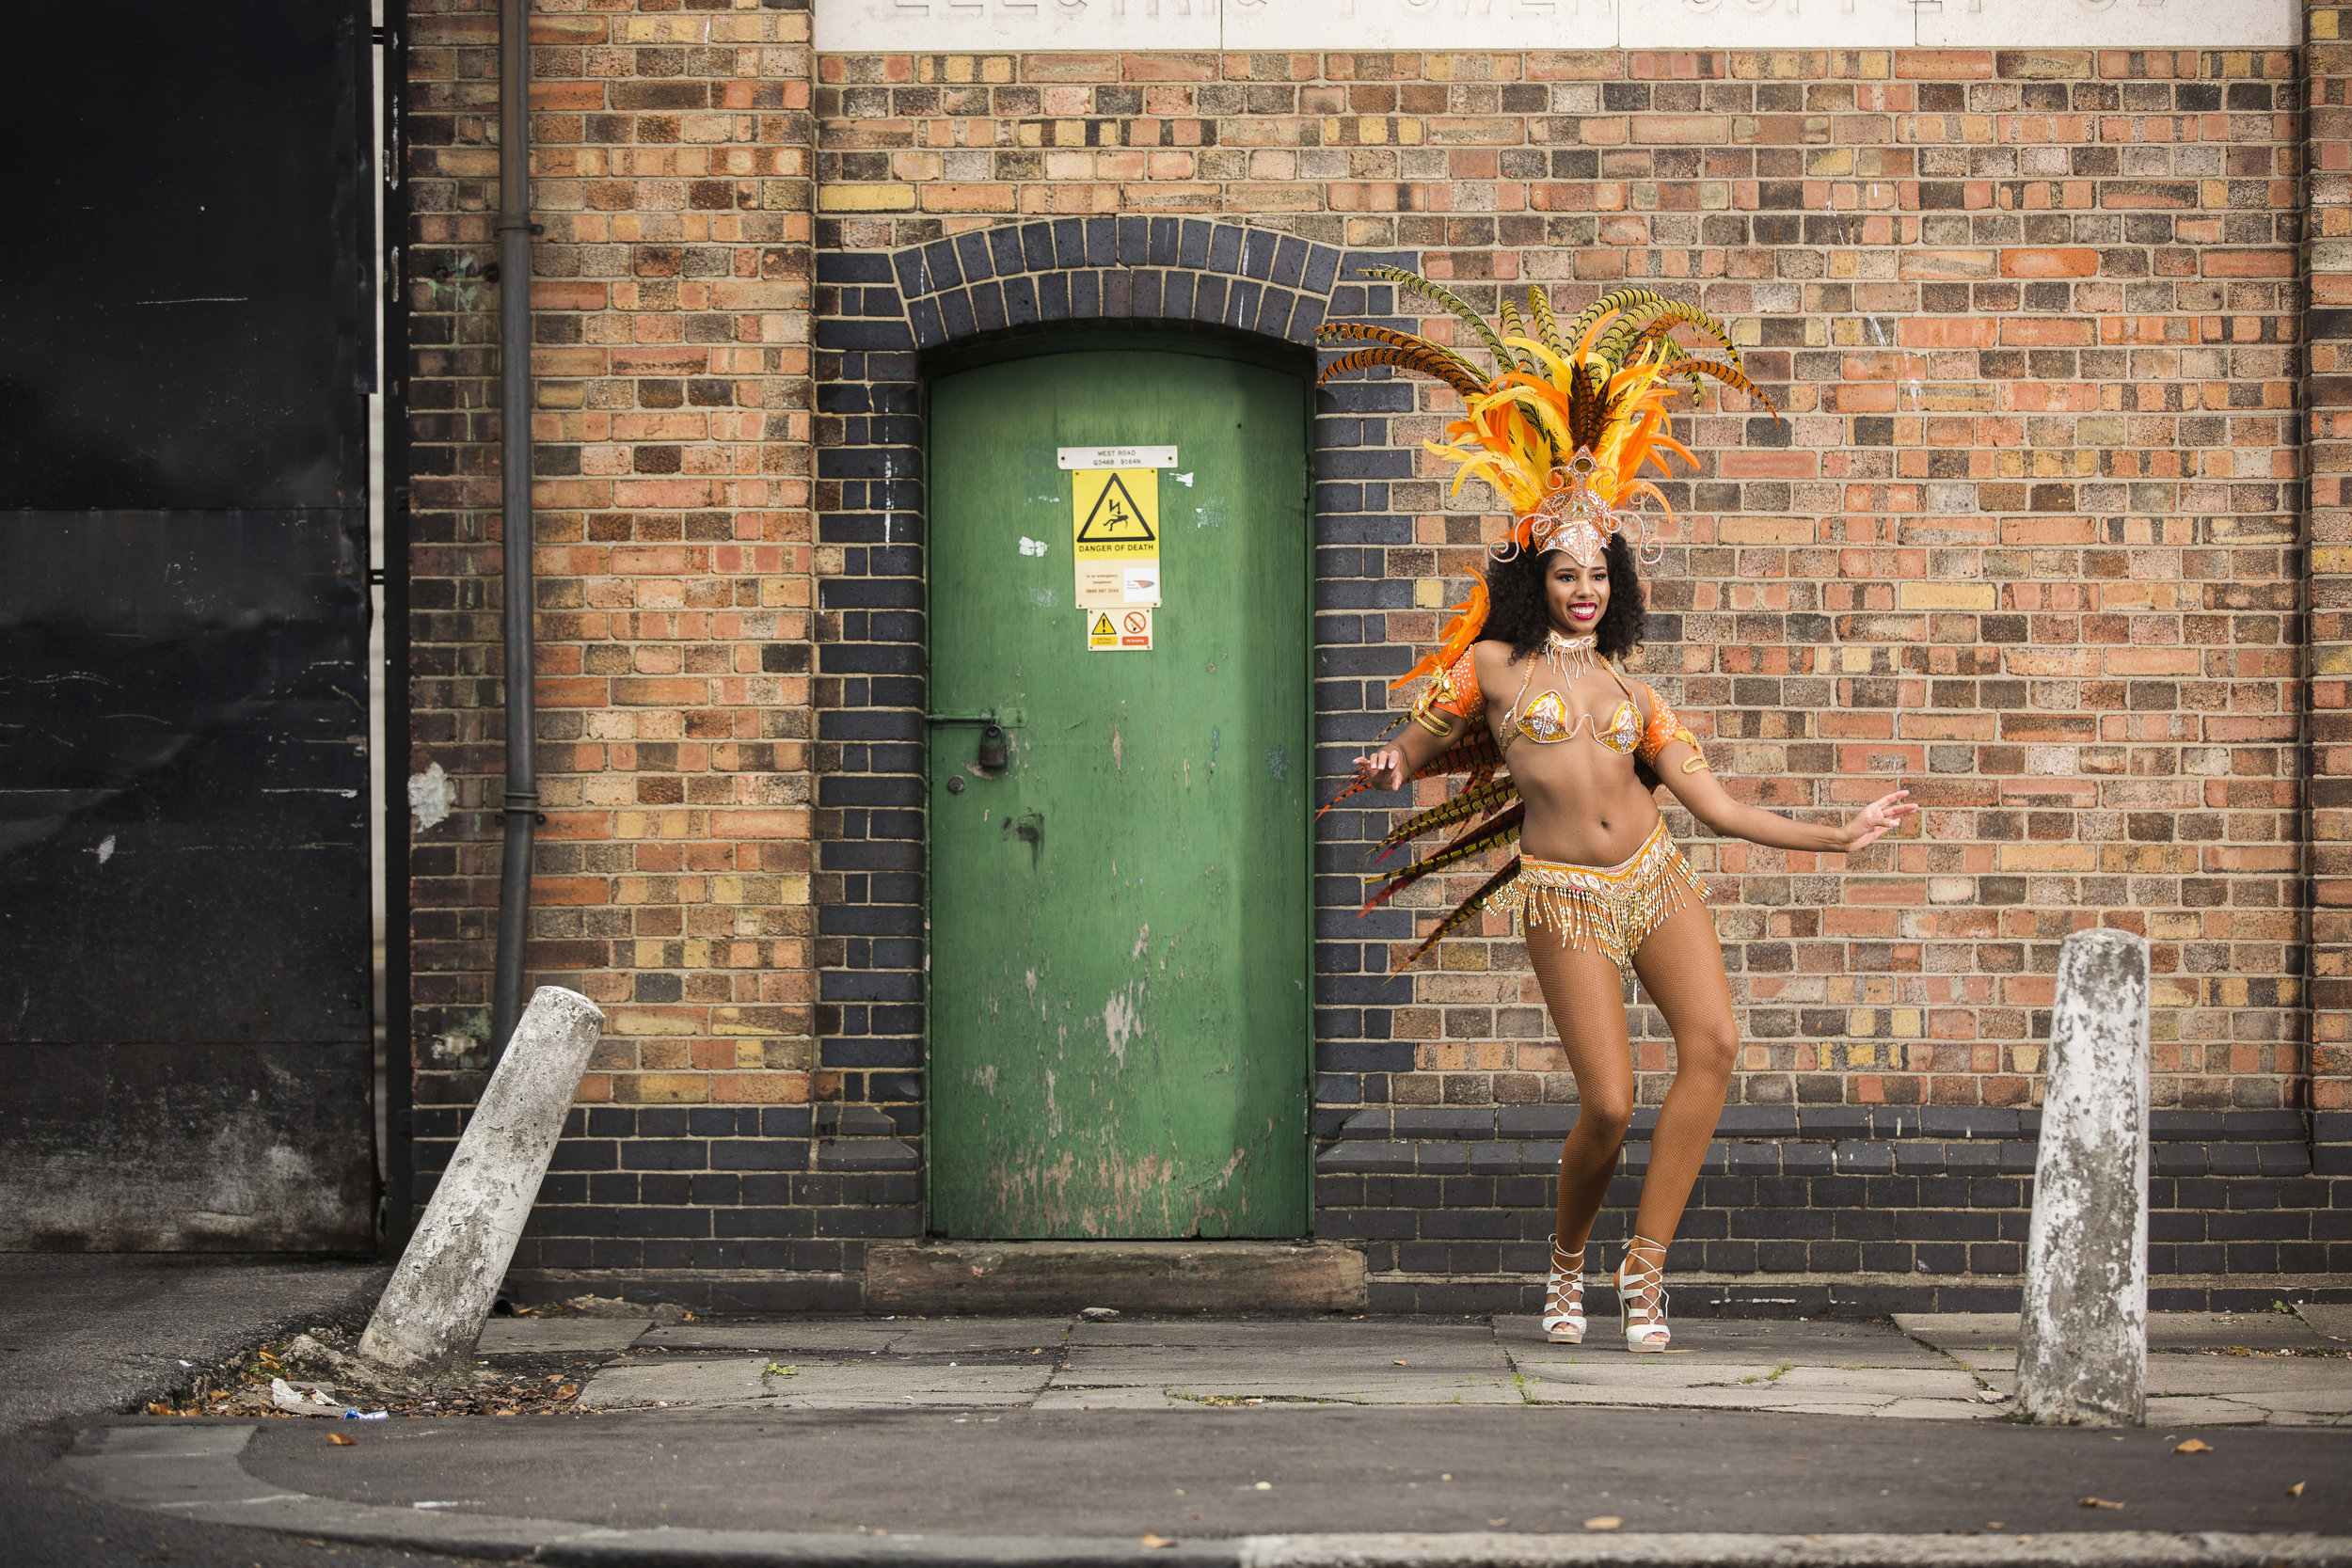 Maxine-Laurie Marshall from London who keeps fit by doing Samba.Photo by Fabio De Paola  30 October 2016